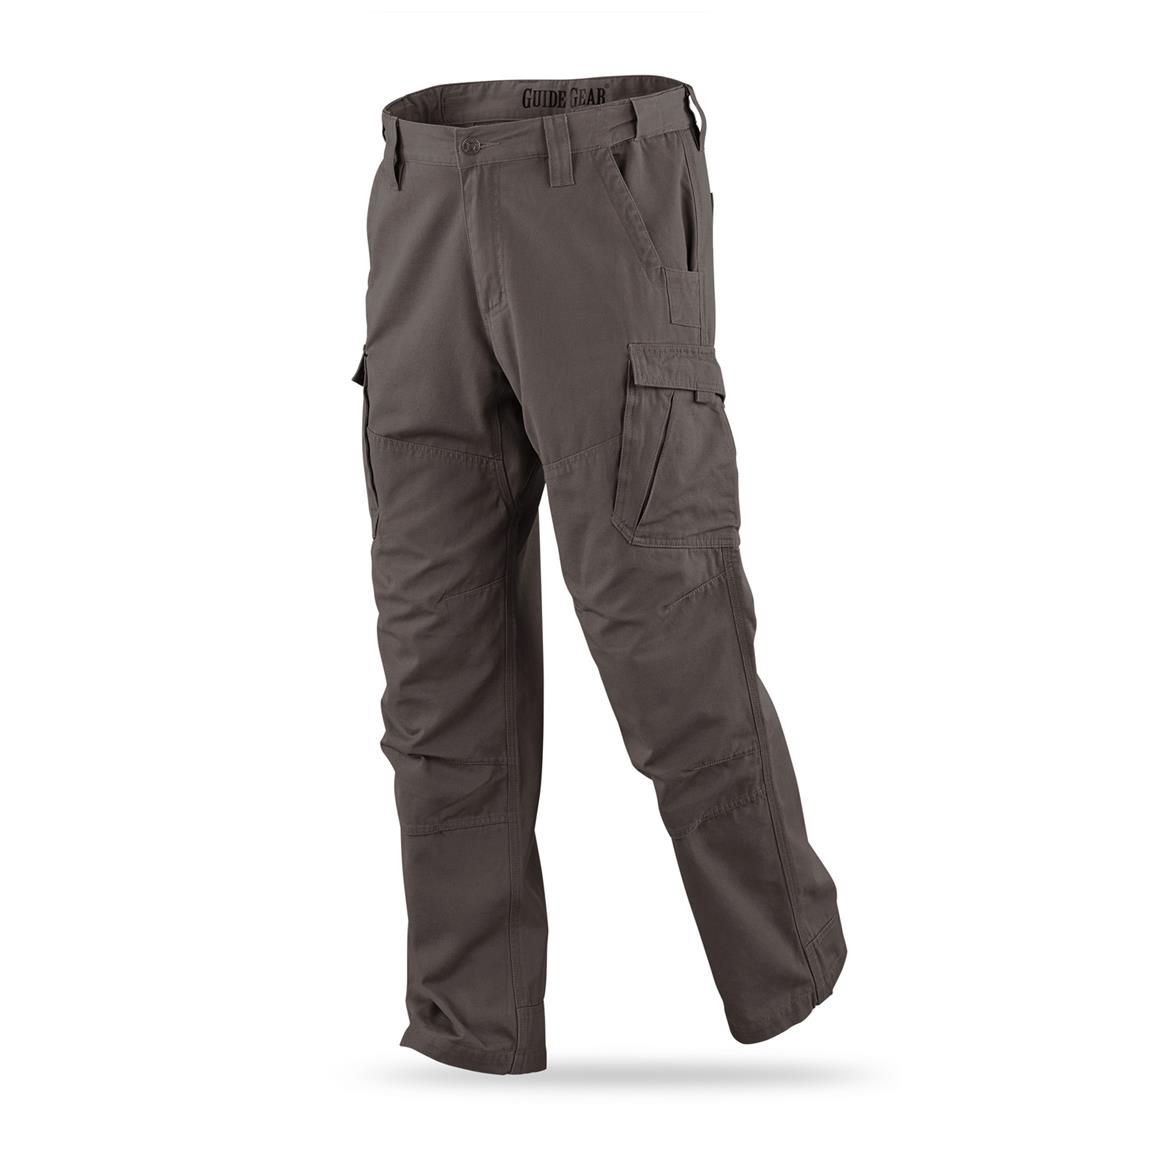 Guide Gear Men's Canvas Work Pants, Dark Coffee